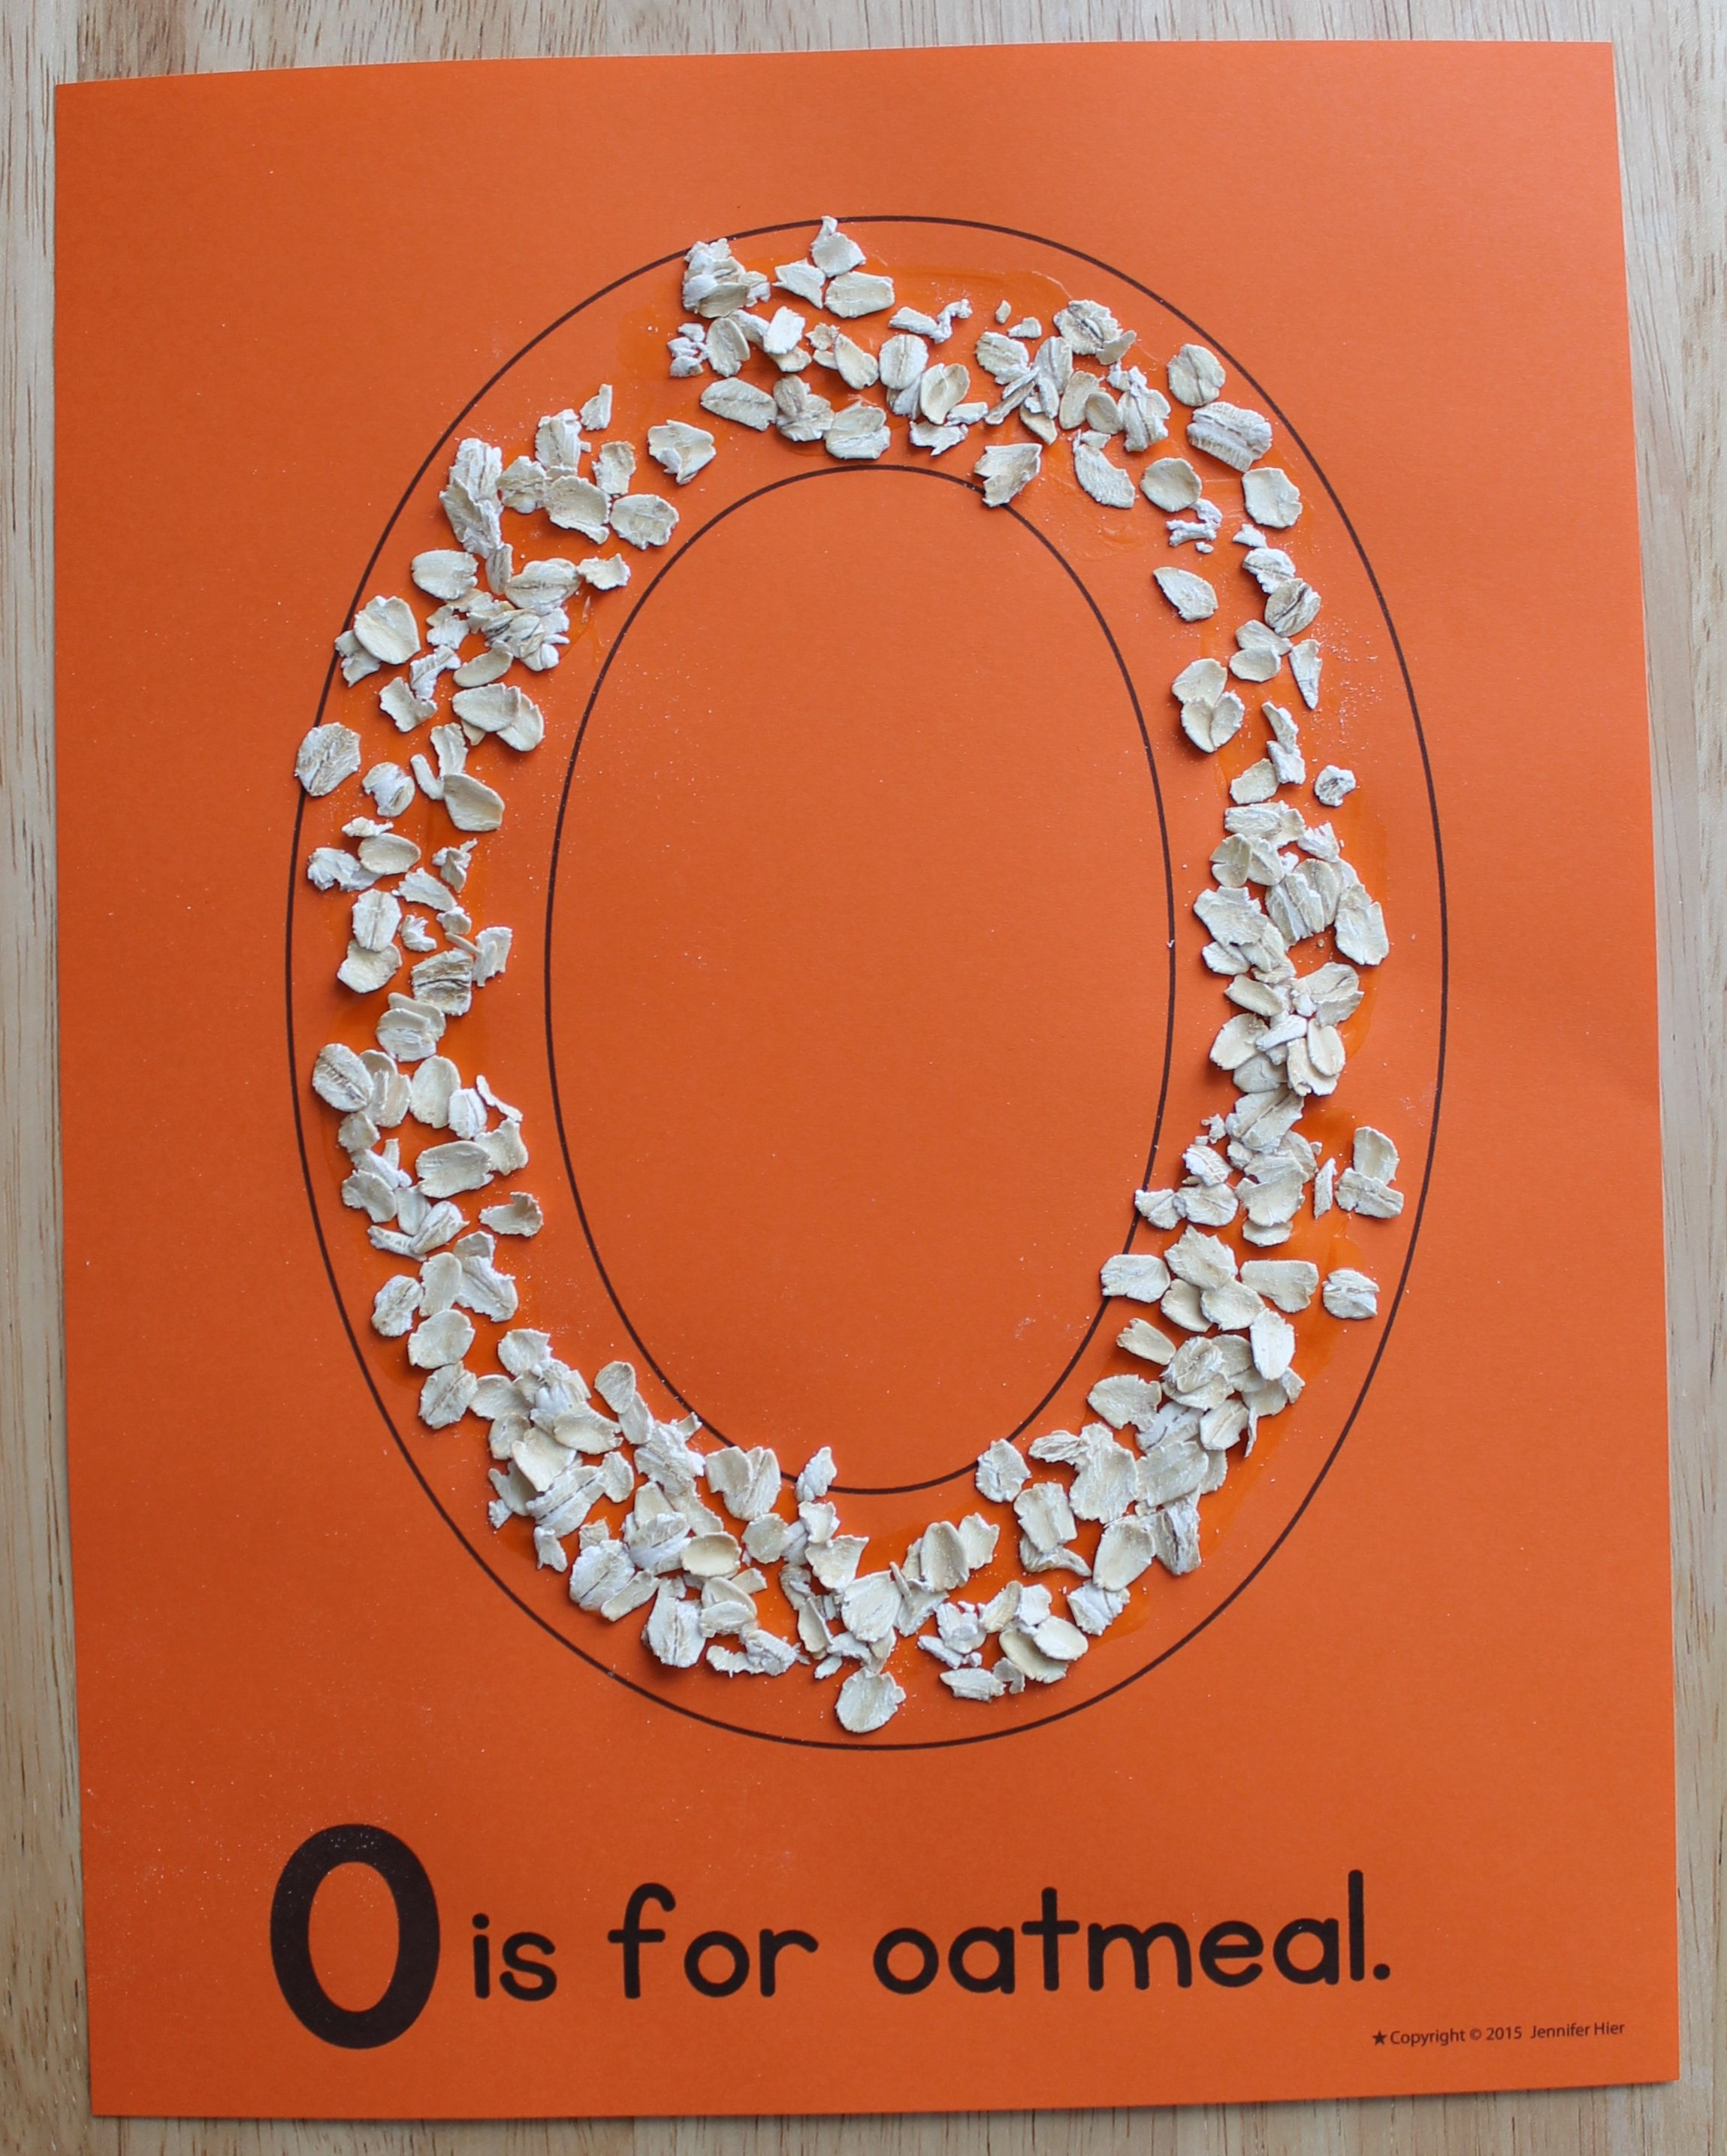 O Is For Oatmeal Editable Abc Pages For Letter Of The Week And Alphabet Art Projects Alphabet